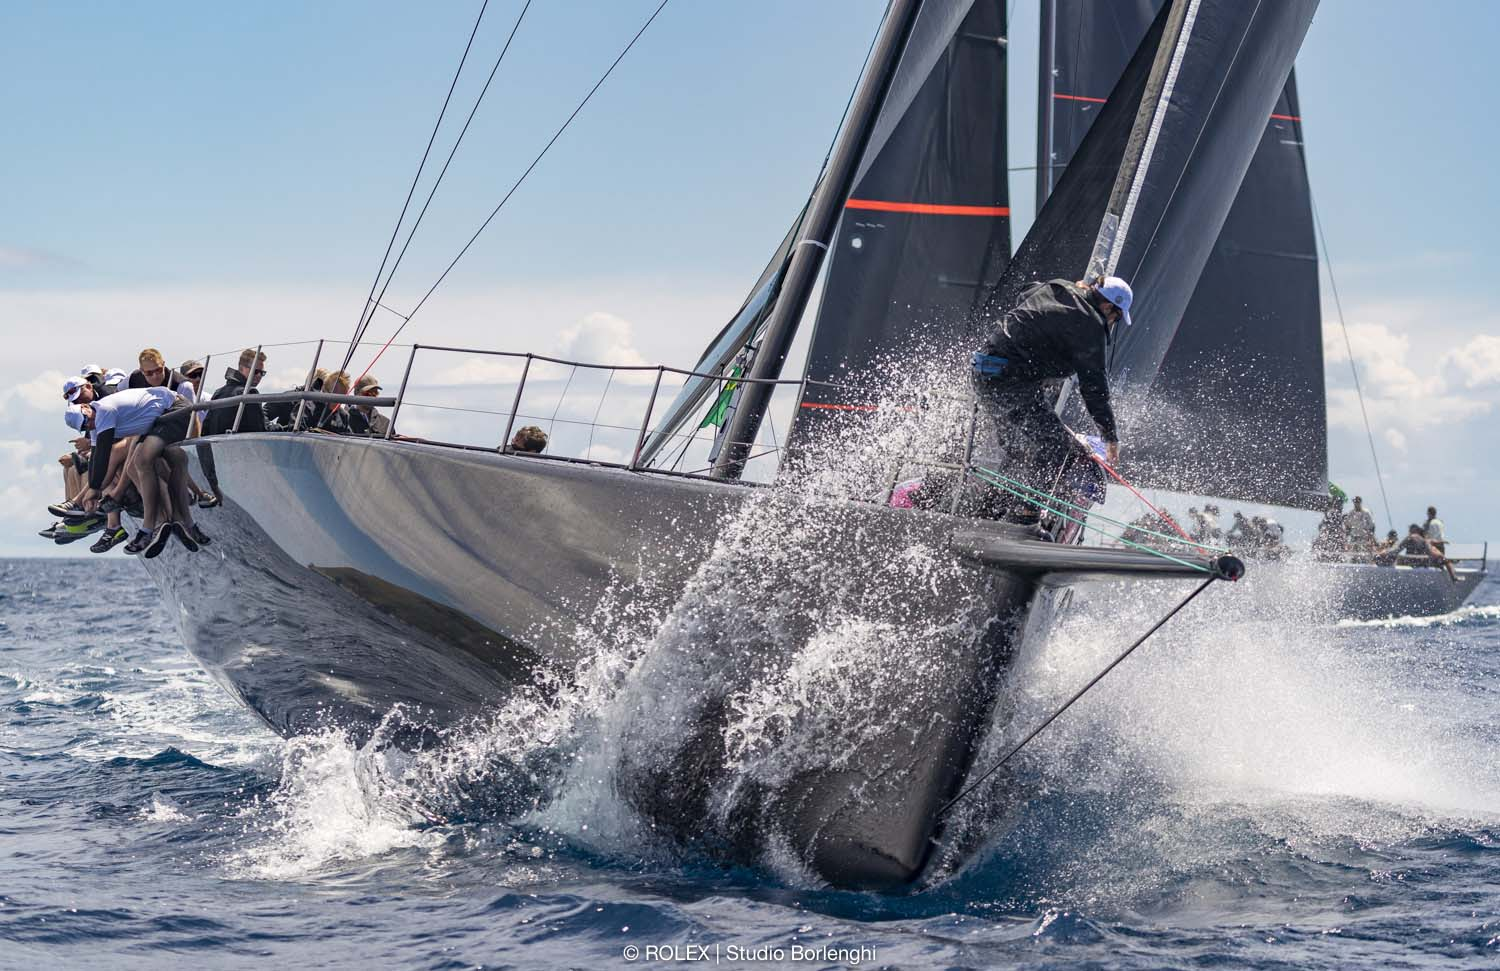 Kinley Fowler on board Maxi 77 Jethou at Rolex Capri Sailing Week